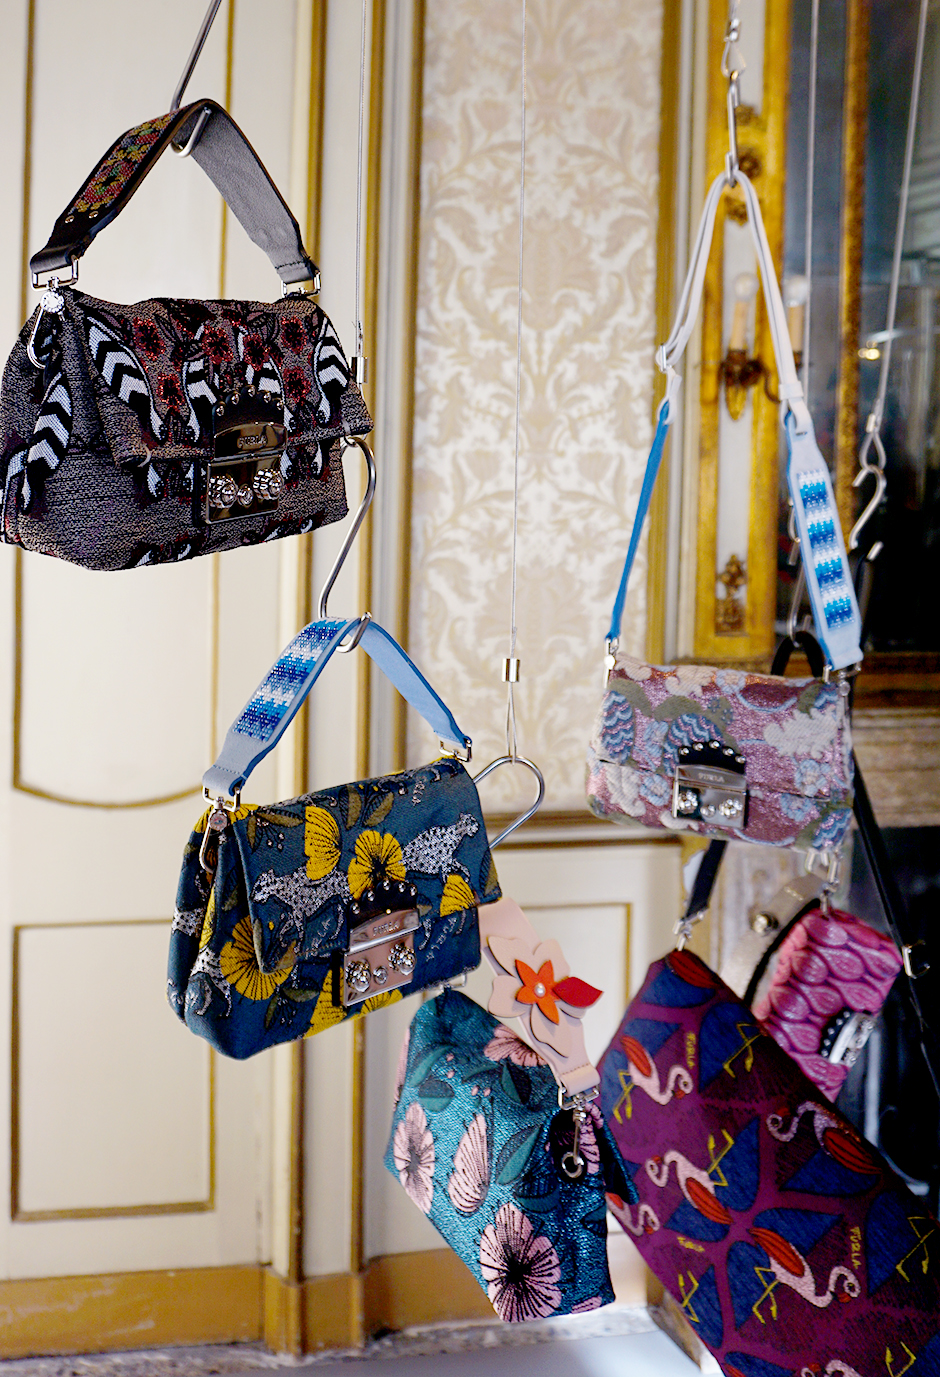 Furla Betailed Bag Straps Brocade Bags Milan Fashion Week